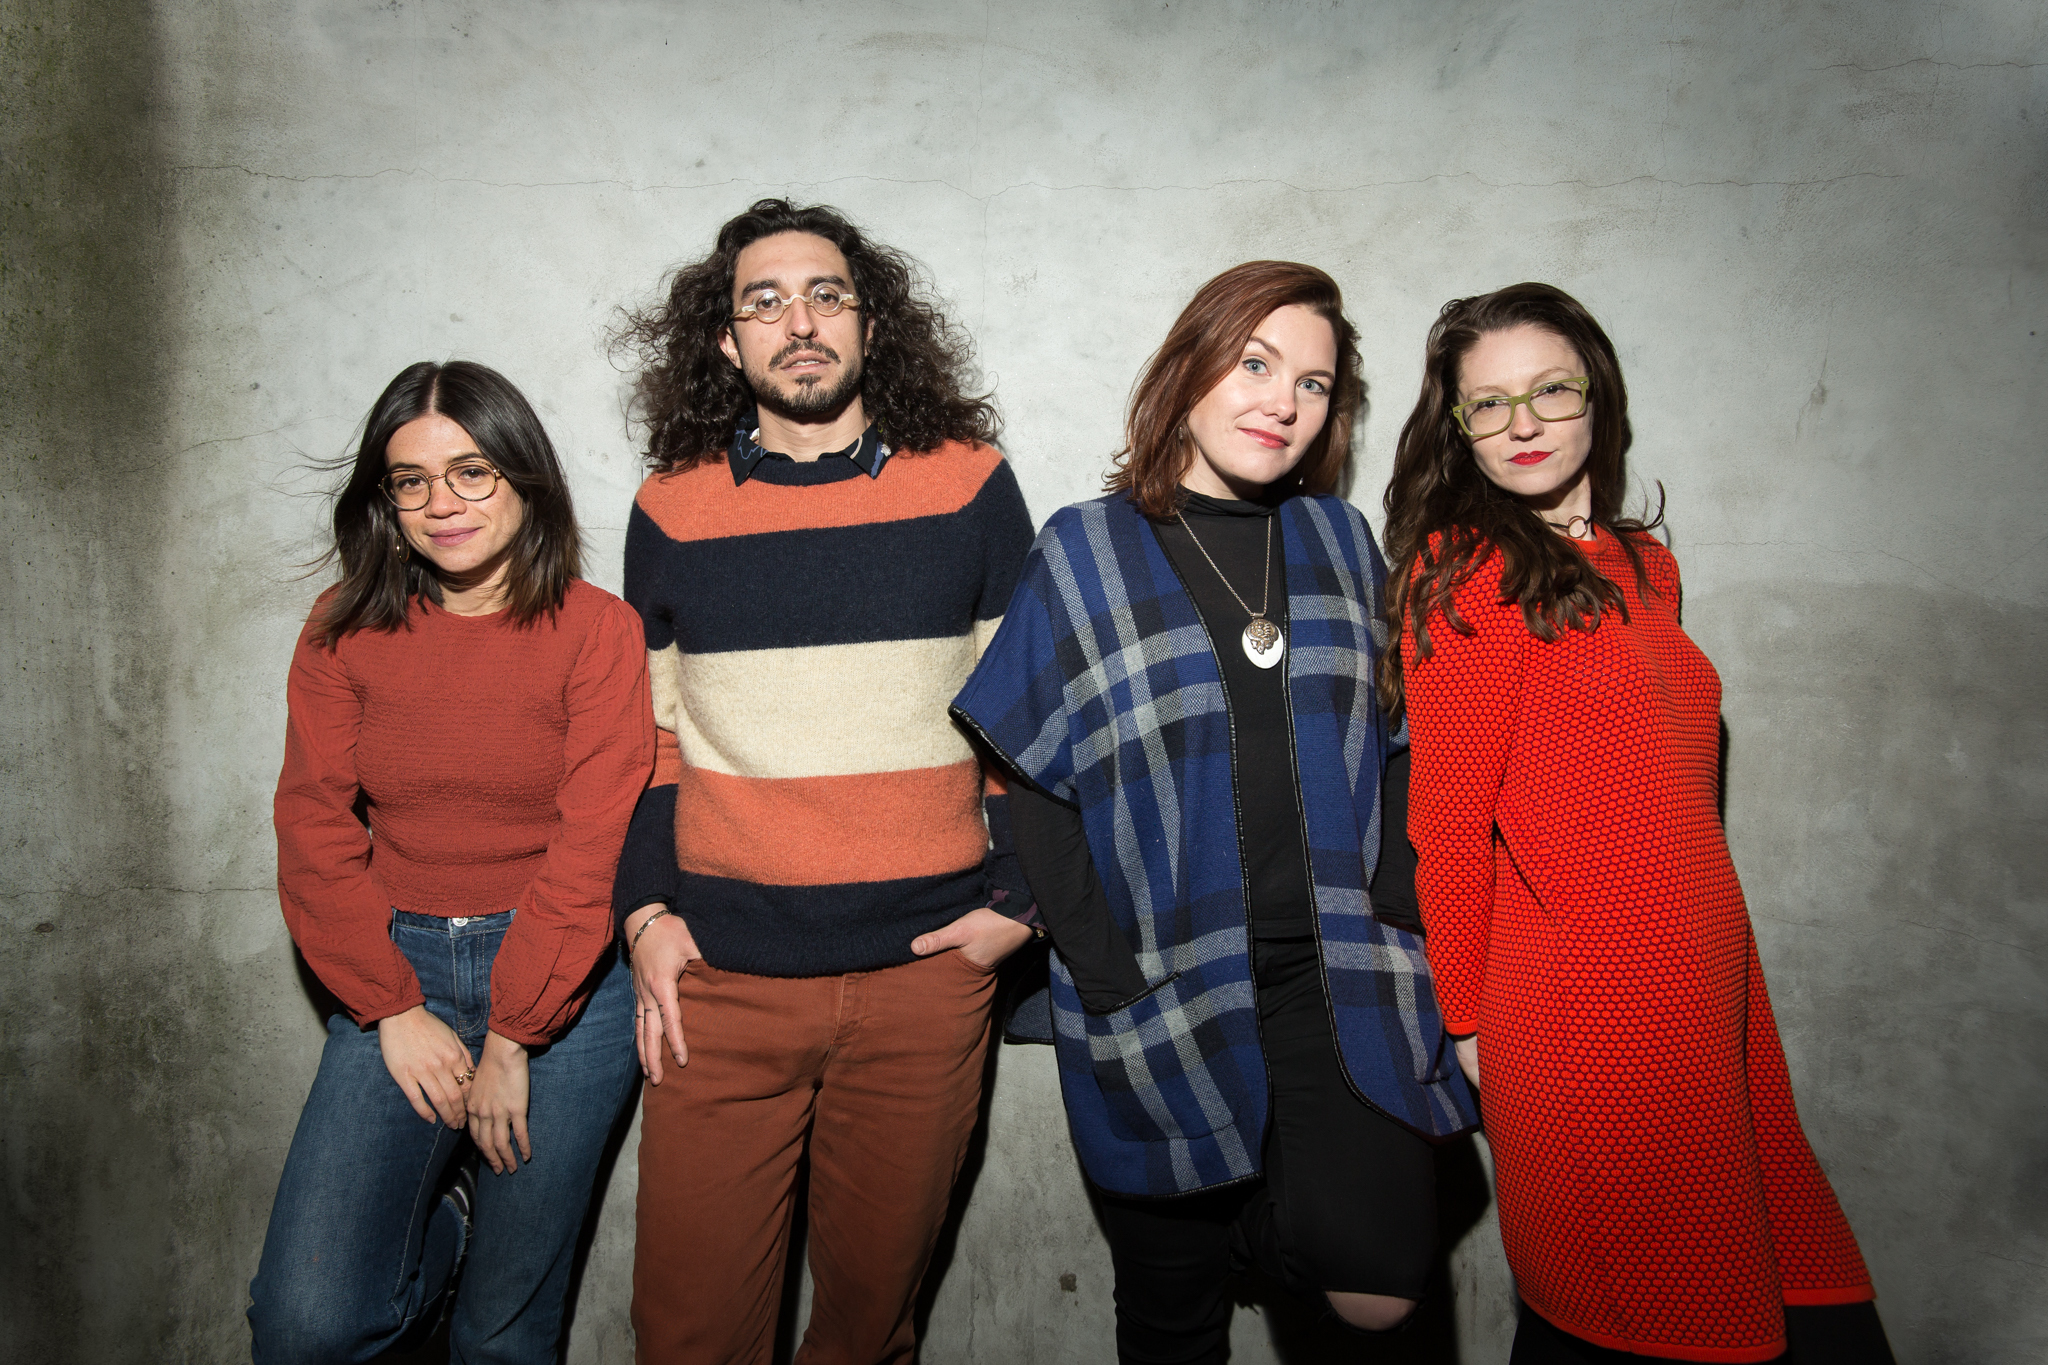 Julia Shiplett, Ben Wasserman, Emily Winter and Carolyn Busa